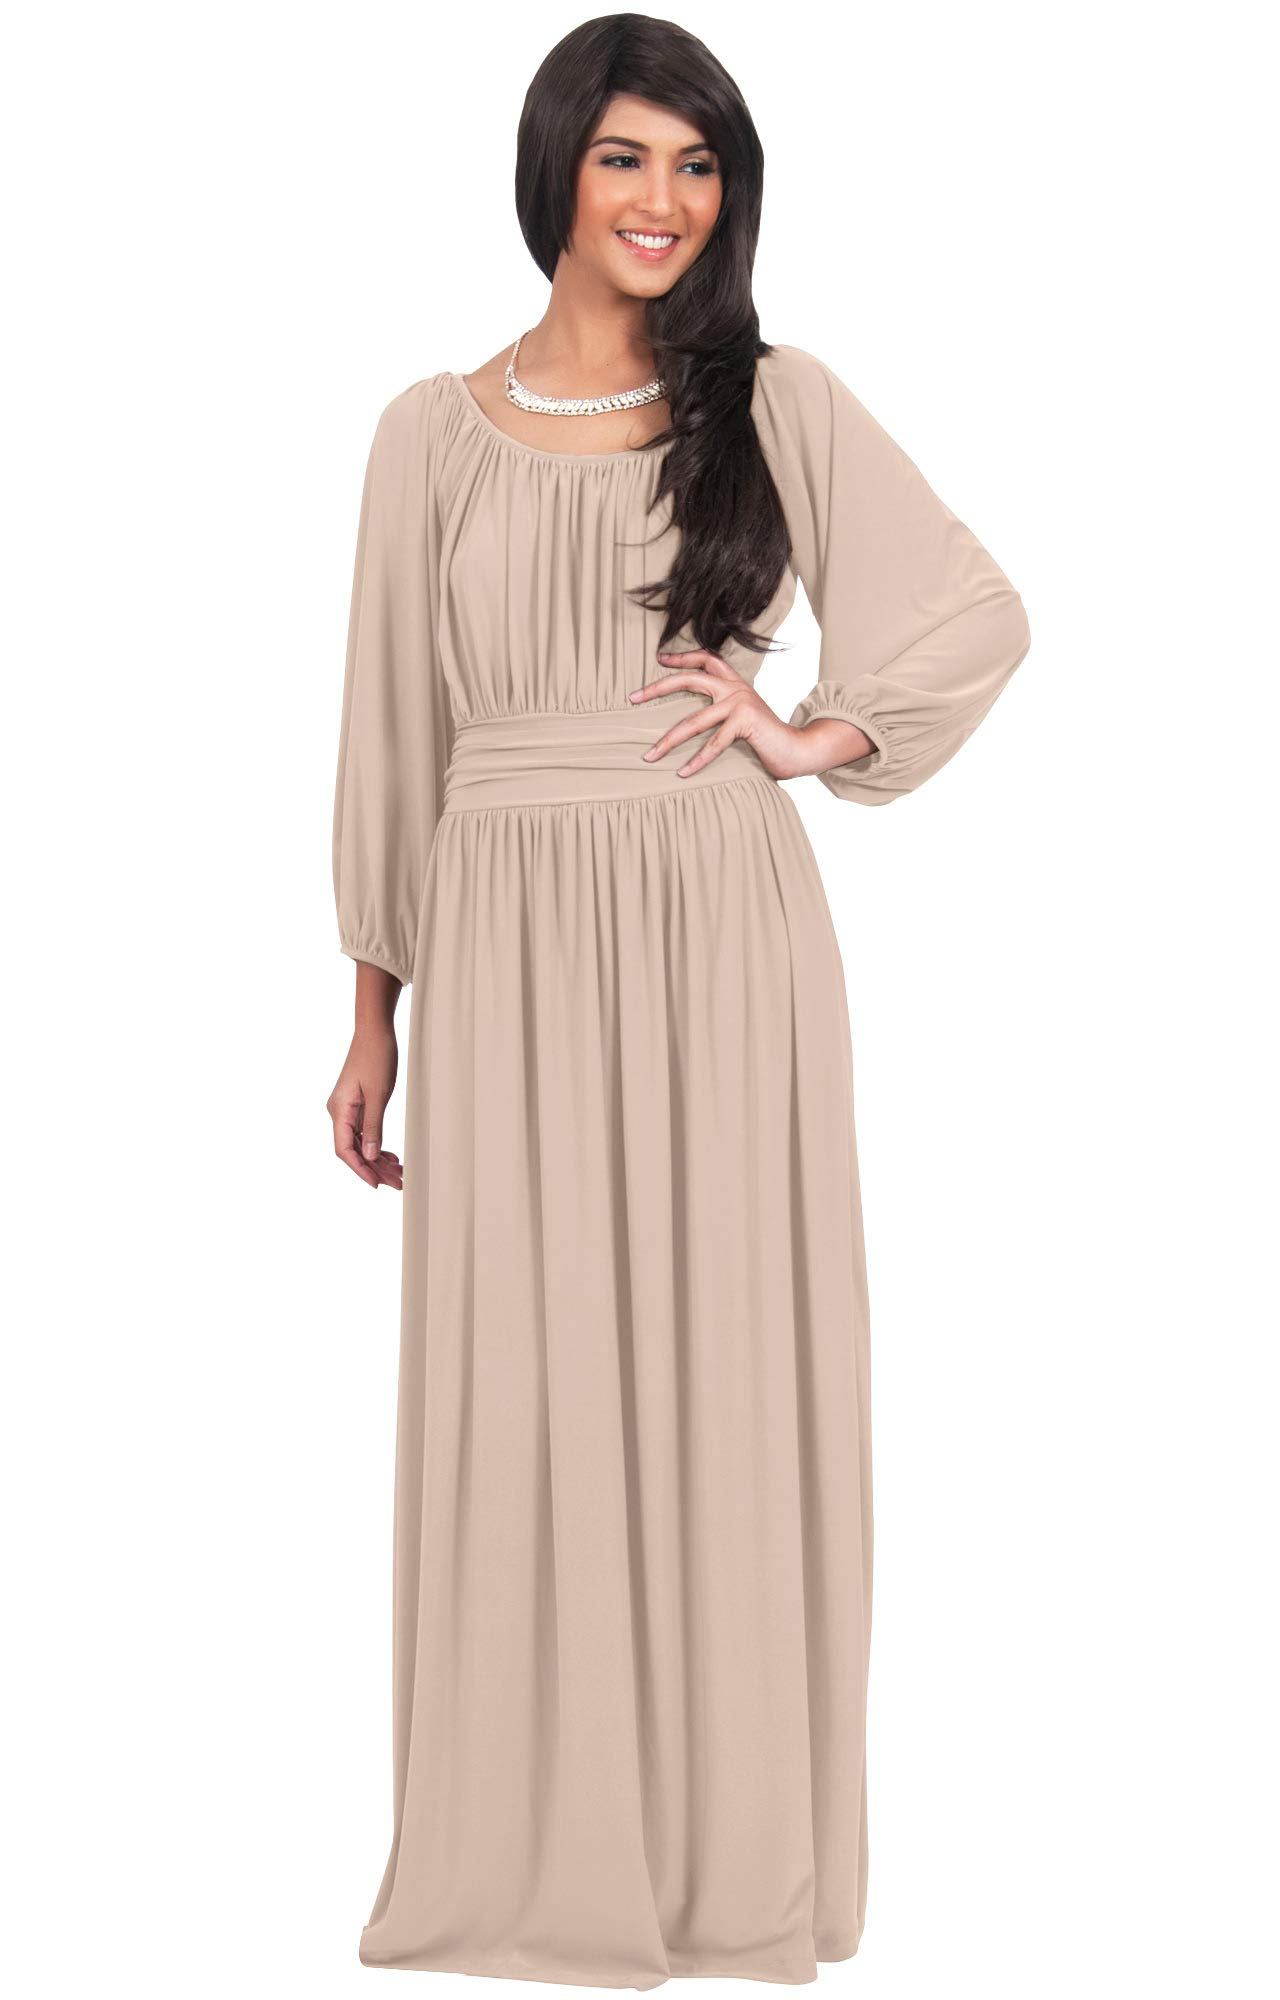 9b945e454cb KOH KOH Plus Size Womens Long Sleeve Sleeves Vintage Peasant Empire Waist  Fall Loose Flowy Fall Winter Casual Maternity Abaya Gown Gowns Maxi Dress  Dresses